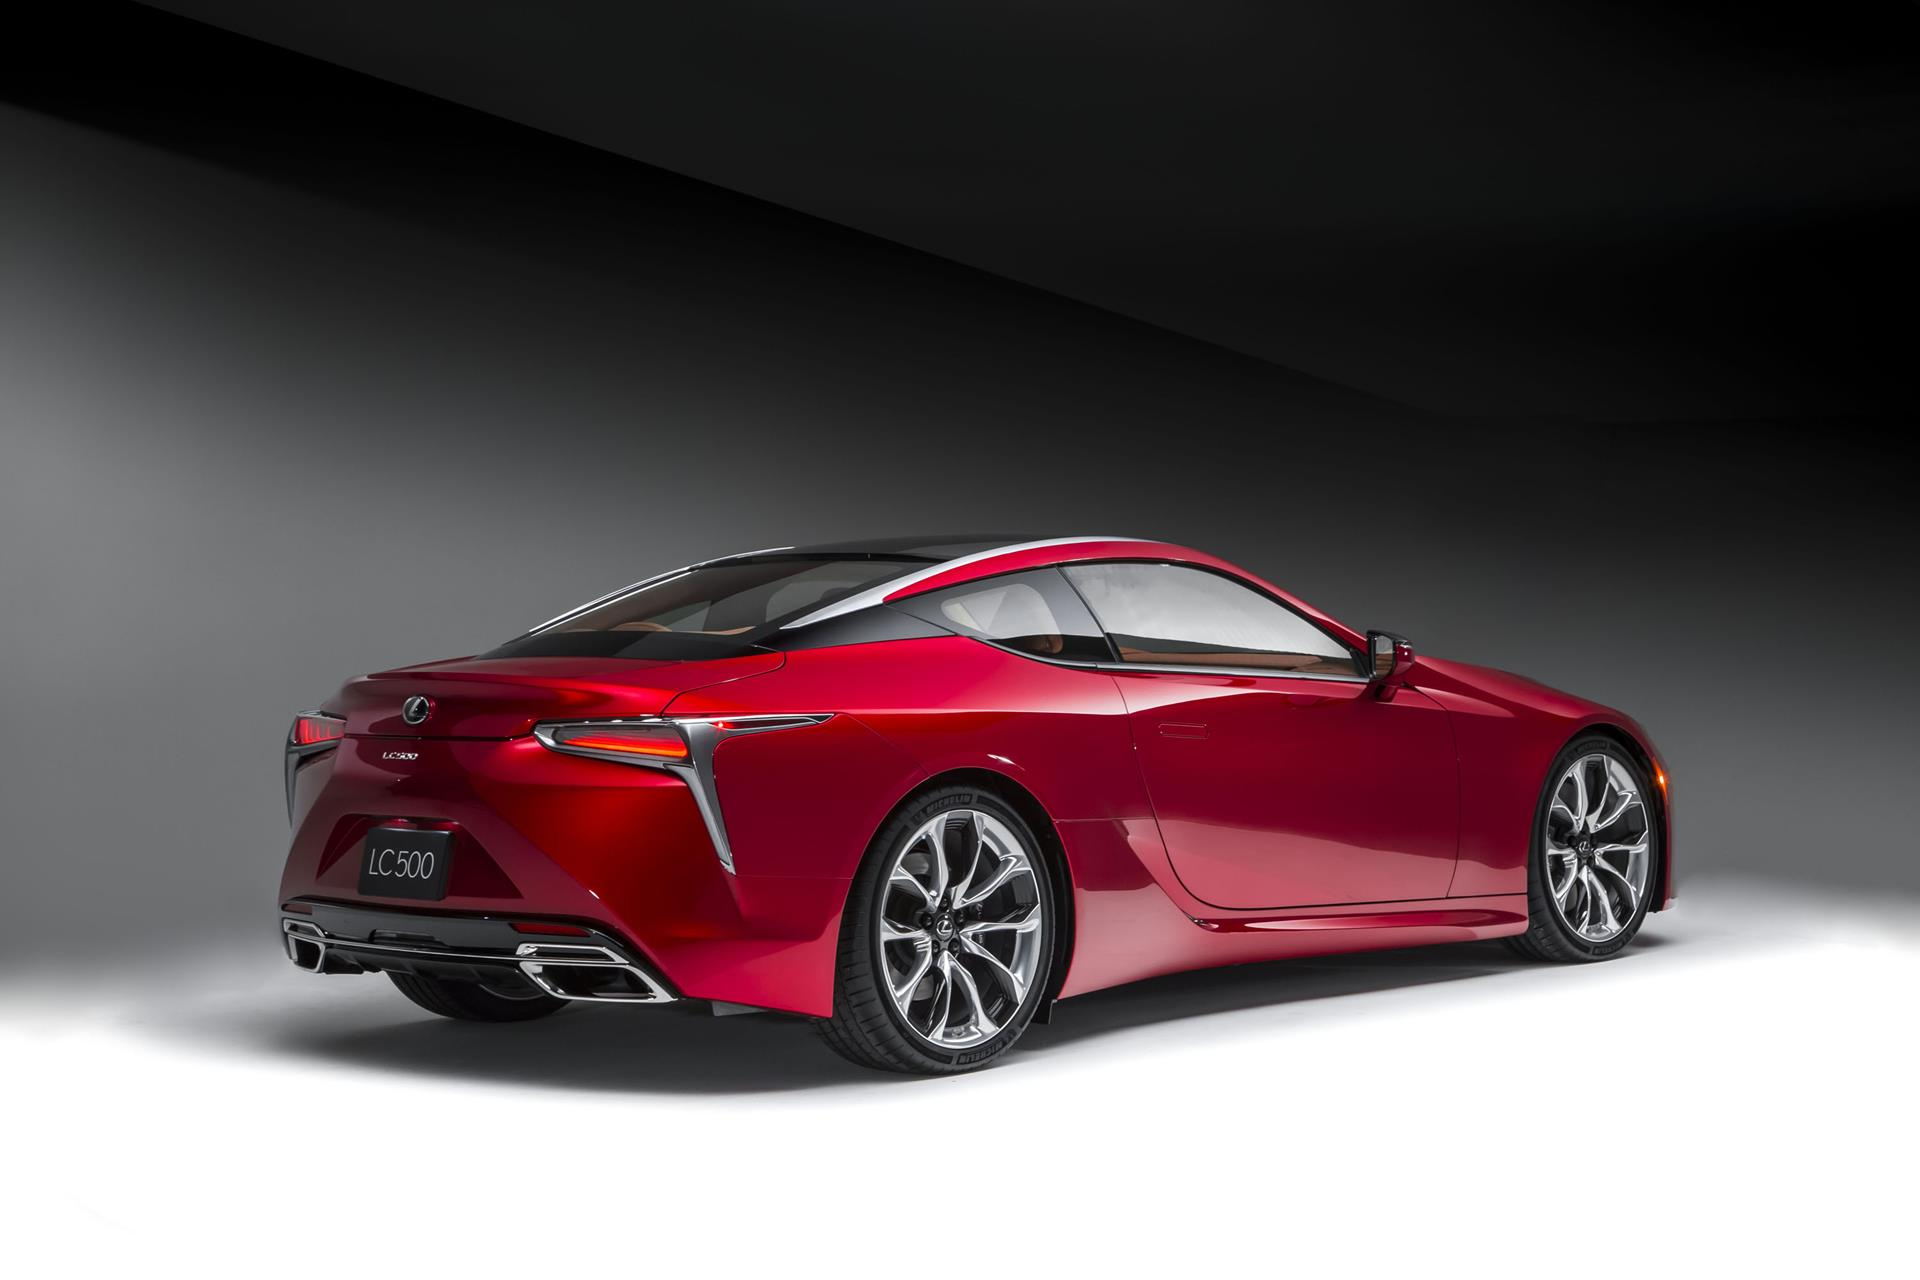 2017 lexus lc 500 images photo 2017 lexus lc500 sports coupe image. Black Bedroom Furniture Sets. Home Design Ideas